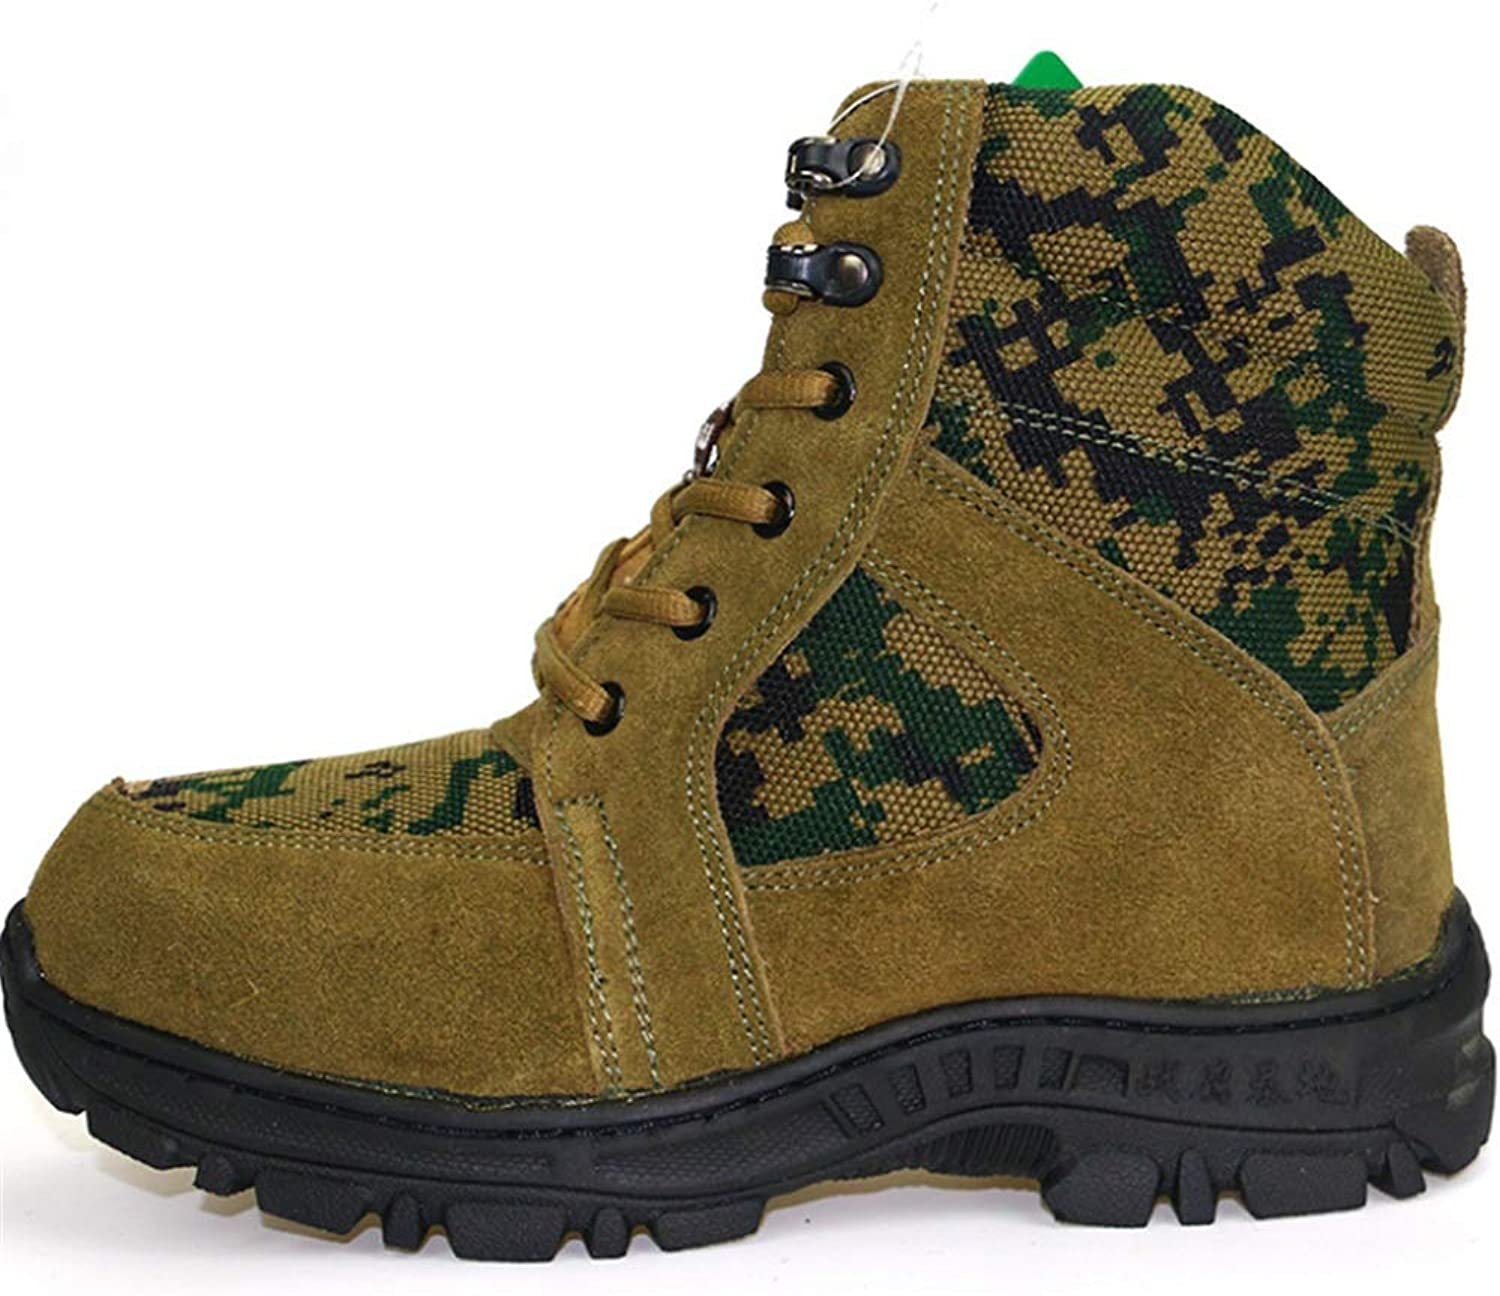 Womens Men Hiking Boots Walking shoes Trekking Winter Snow Boots Unisex Outdoor shoes (color   Green, Size   7.5 US)